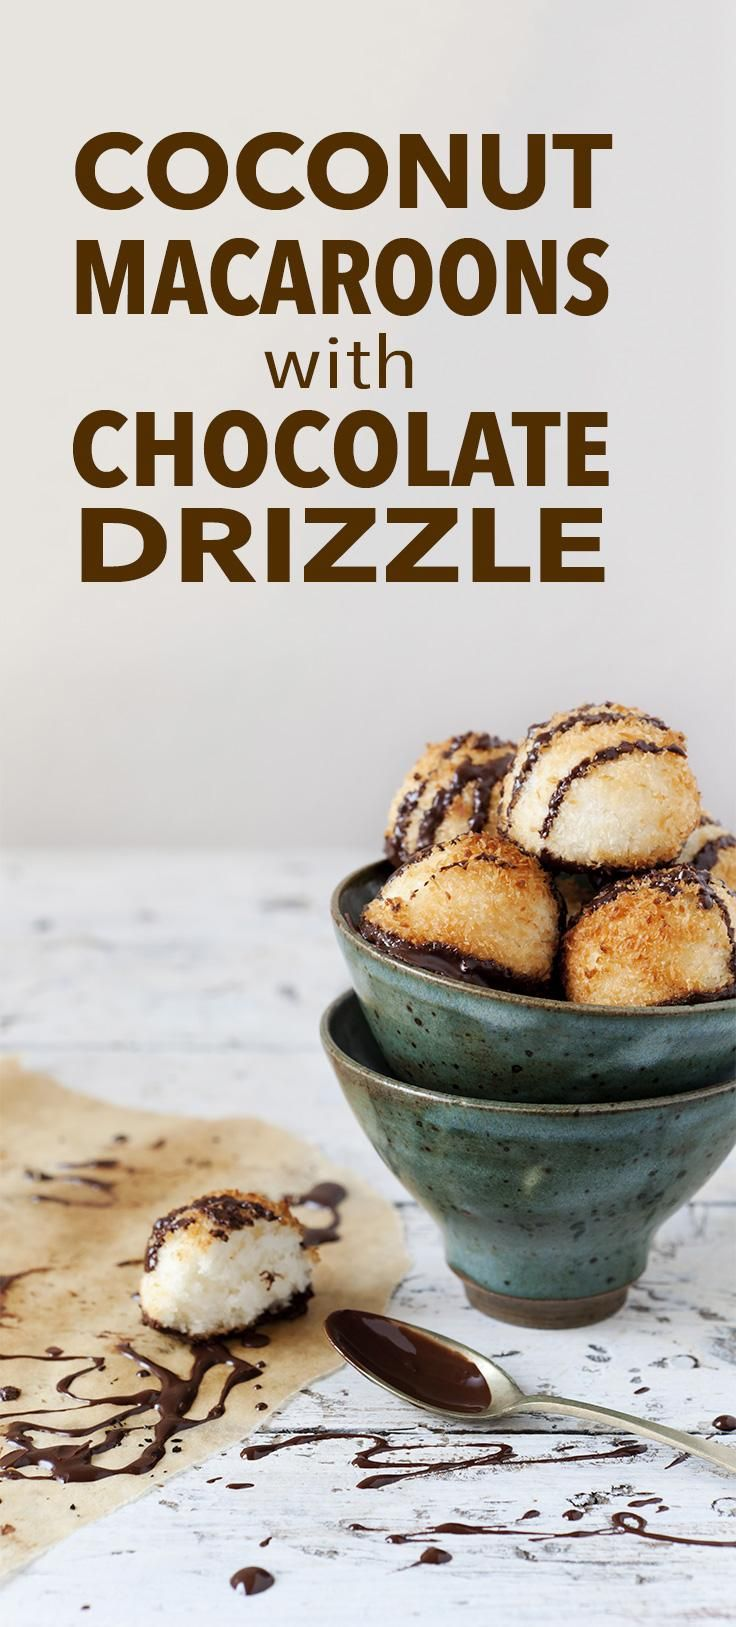 Coconut Macaroons with Chocolate Drizzle -- These bite-sized balls of goodness will please your sweet tooth and your waistline. Each cookie is only 65 calories! // desserts // healthy recipes // National Cookie Day // Hanukkah // low calorie // high protein // beachbody // beachbody blog